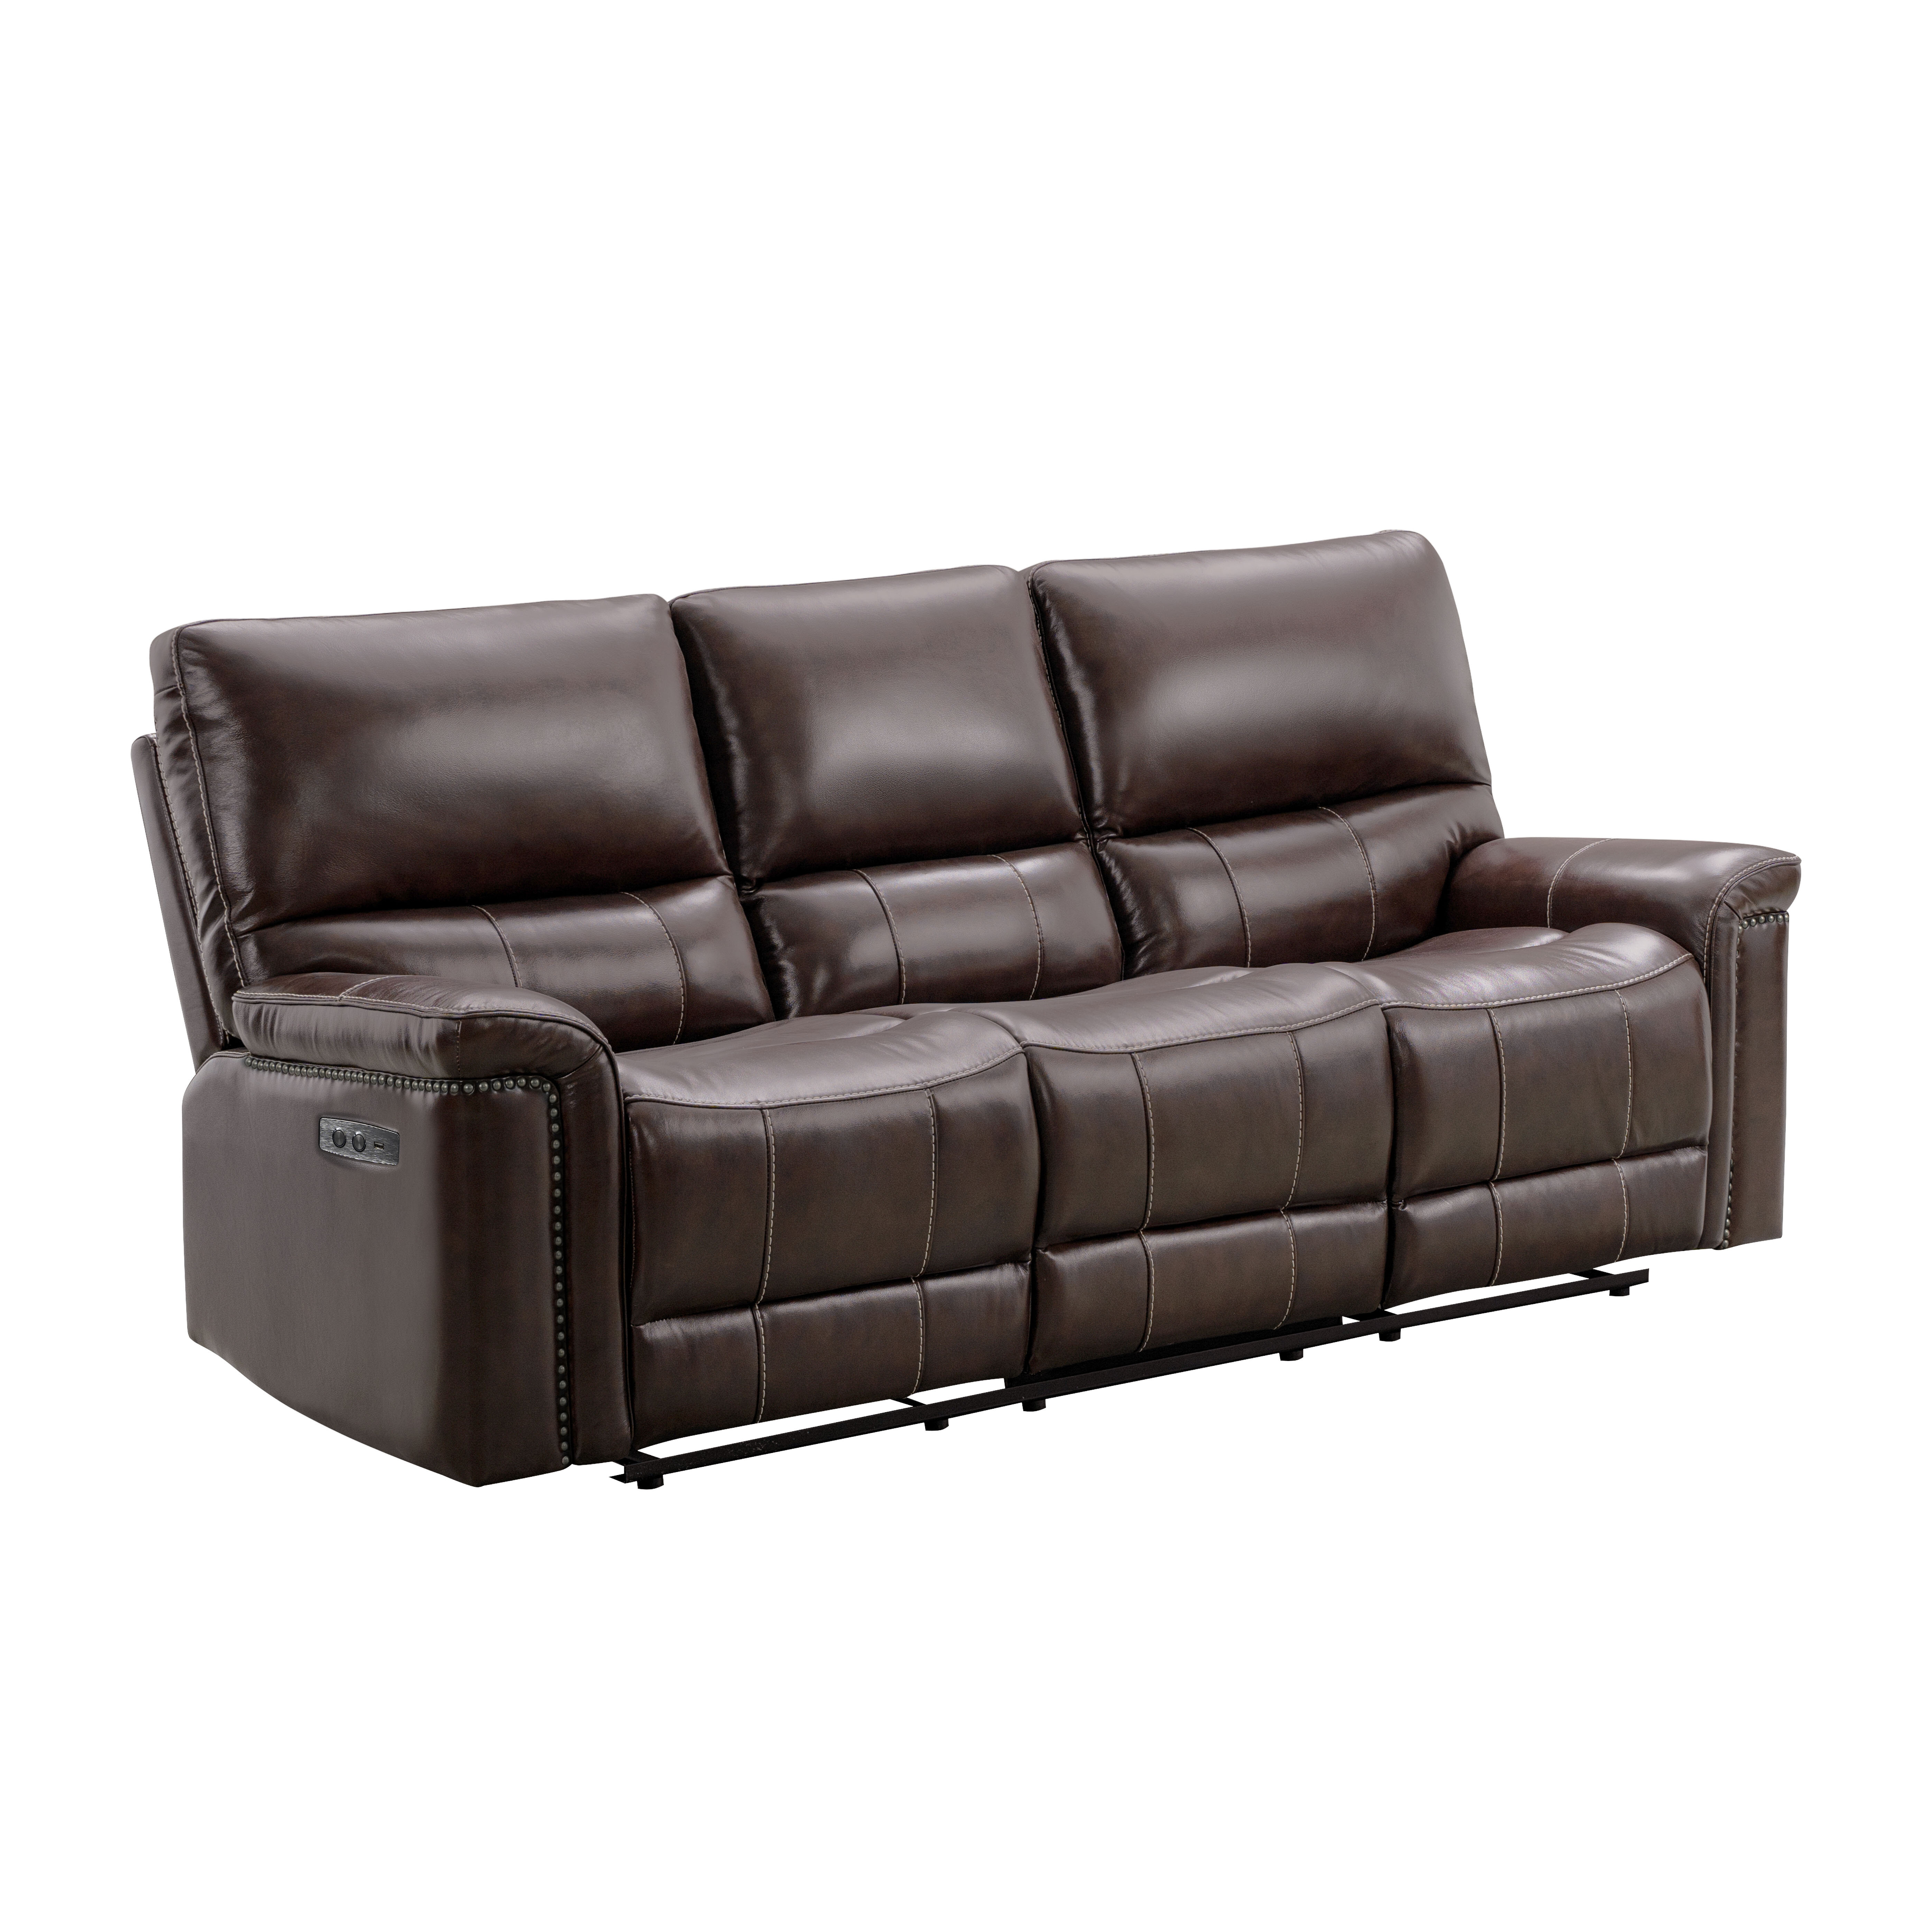 Lark Manor Annemasse 84 Wide Faux Leather Pillow Top Arm Reclining Sofa Wayfair